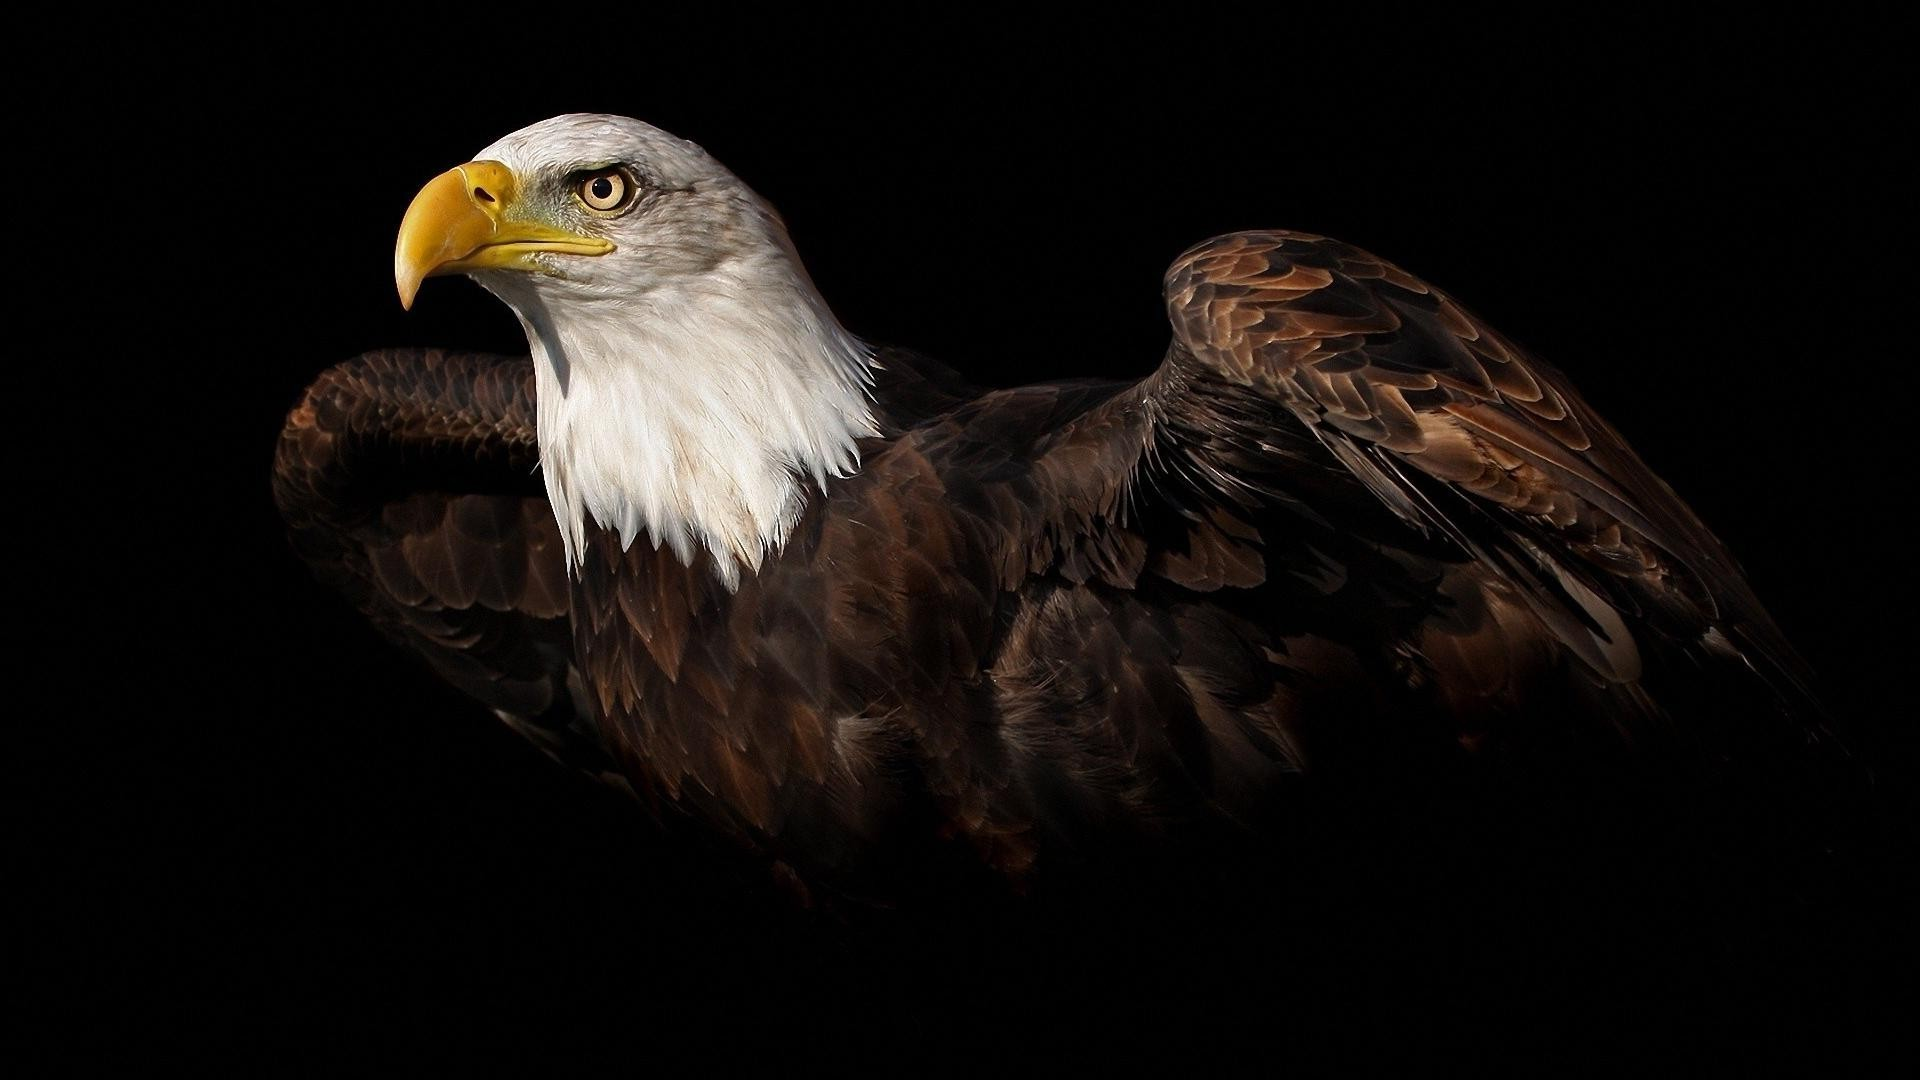 bald eagle wallpaper hd 006